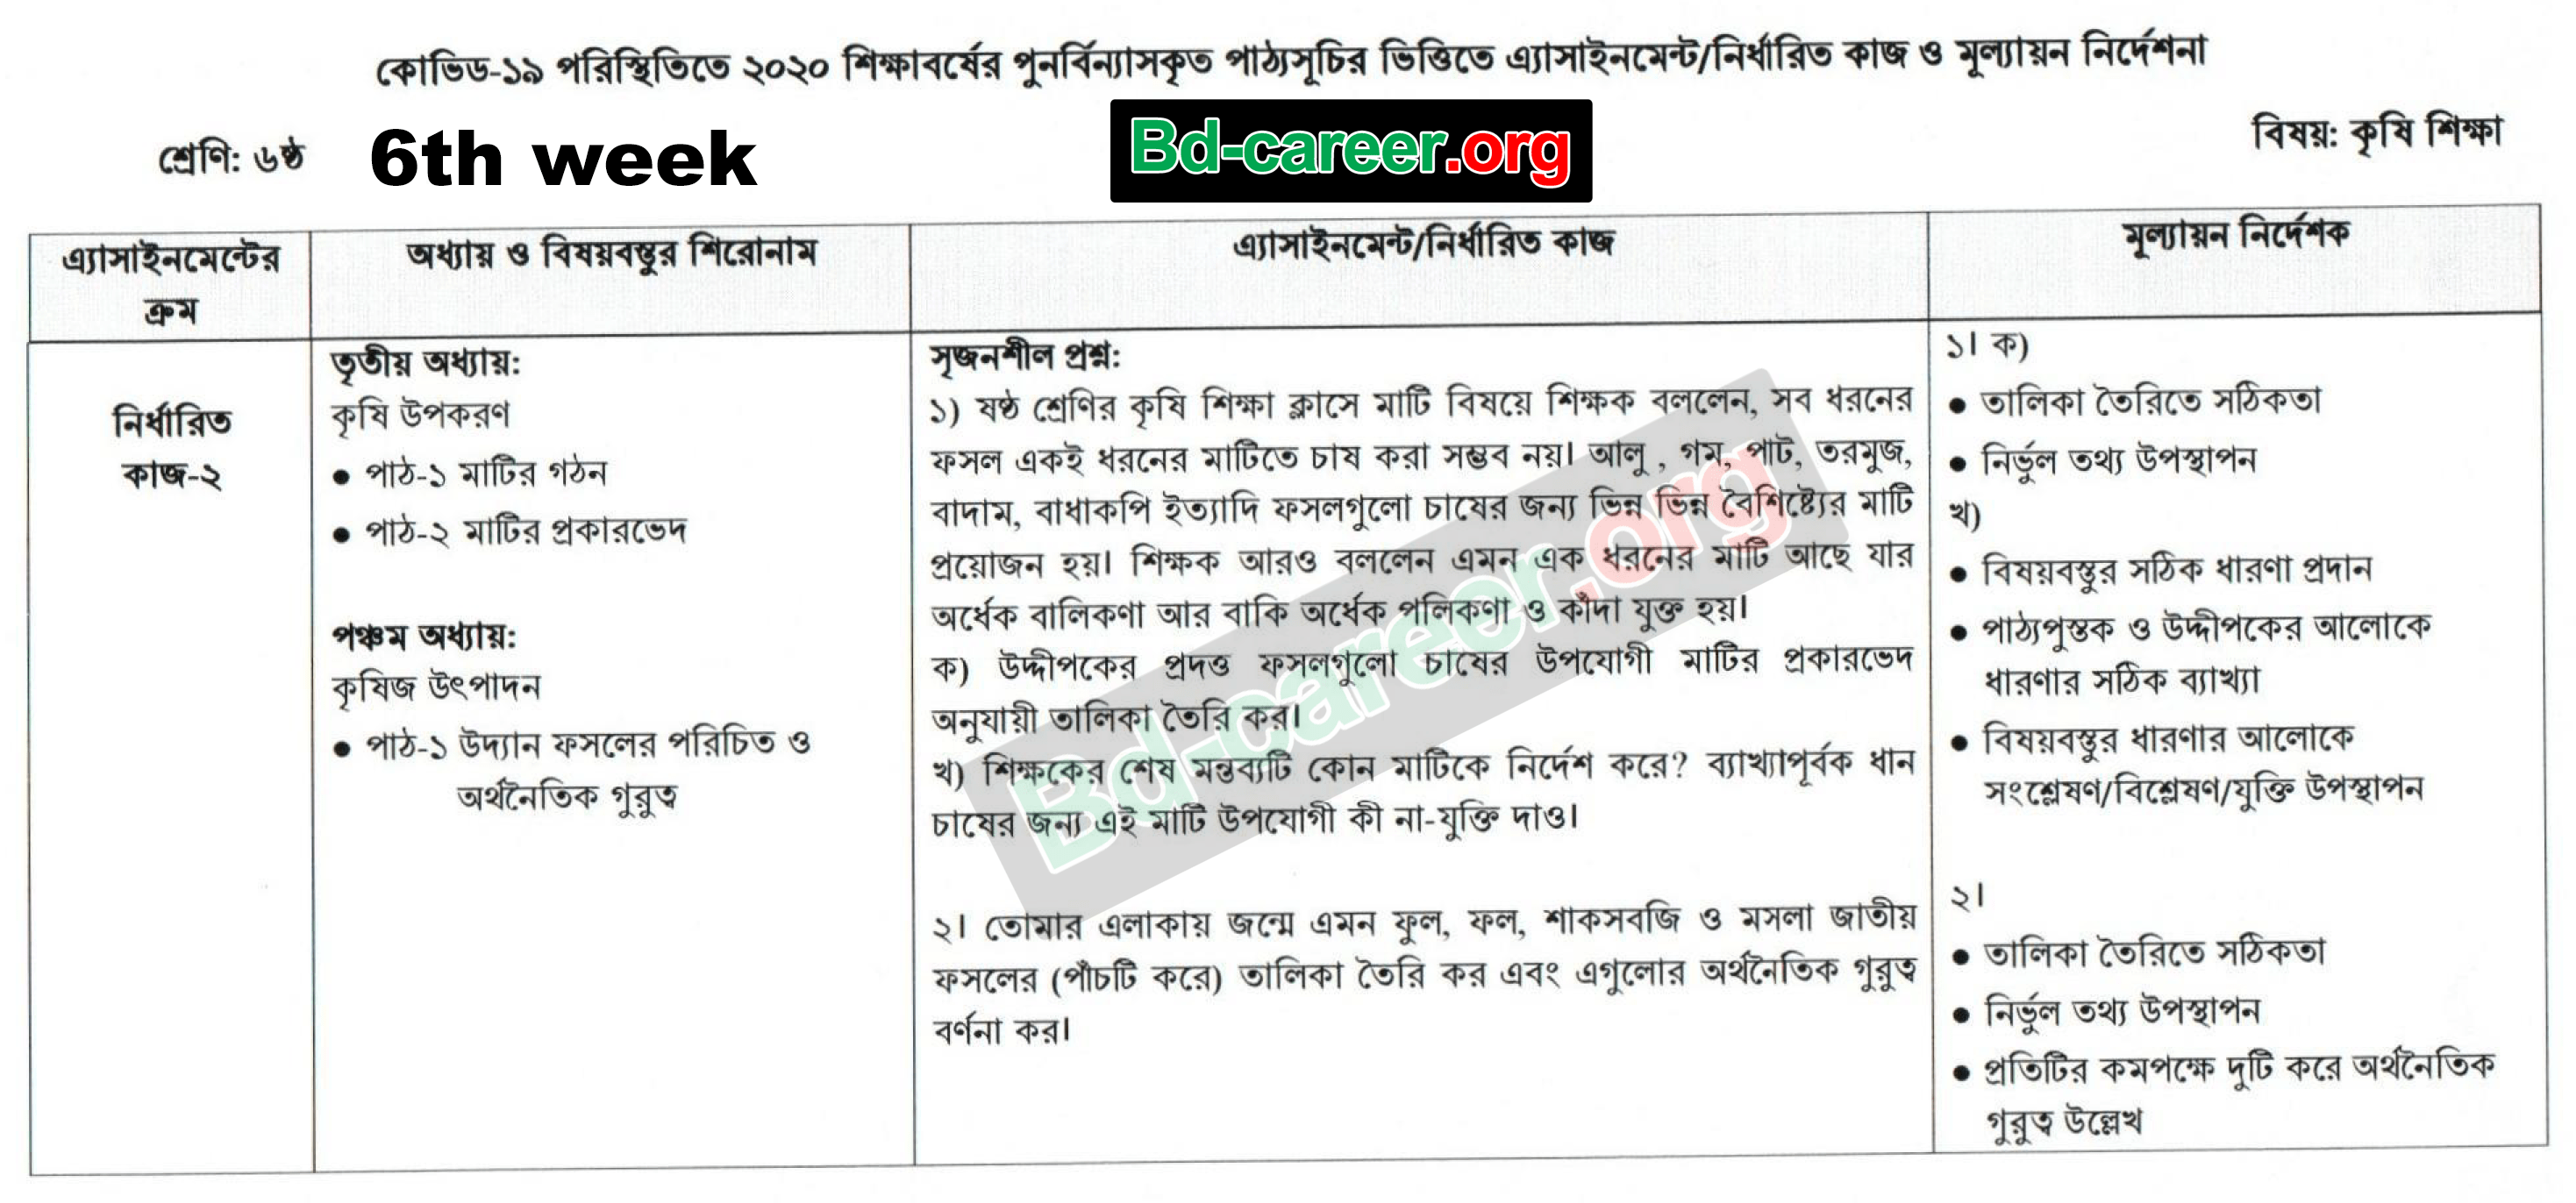 Class 6 6th week Agriculture [Krishi Shikkha] Assignment